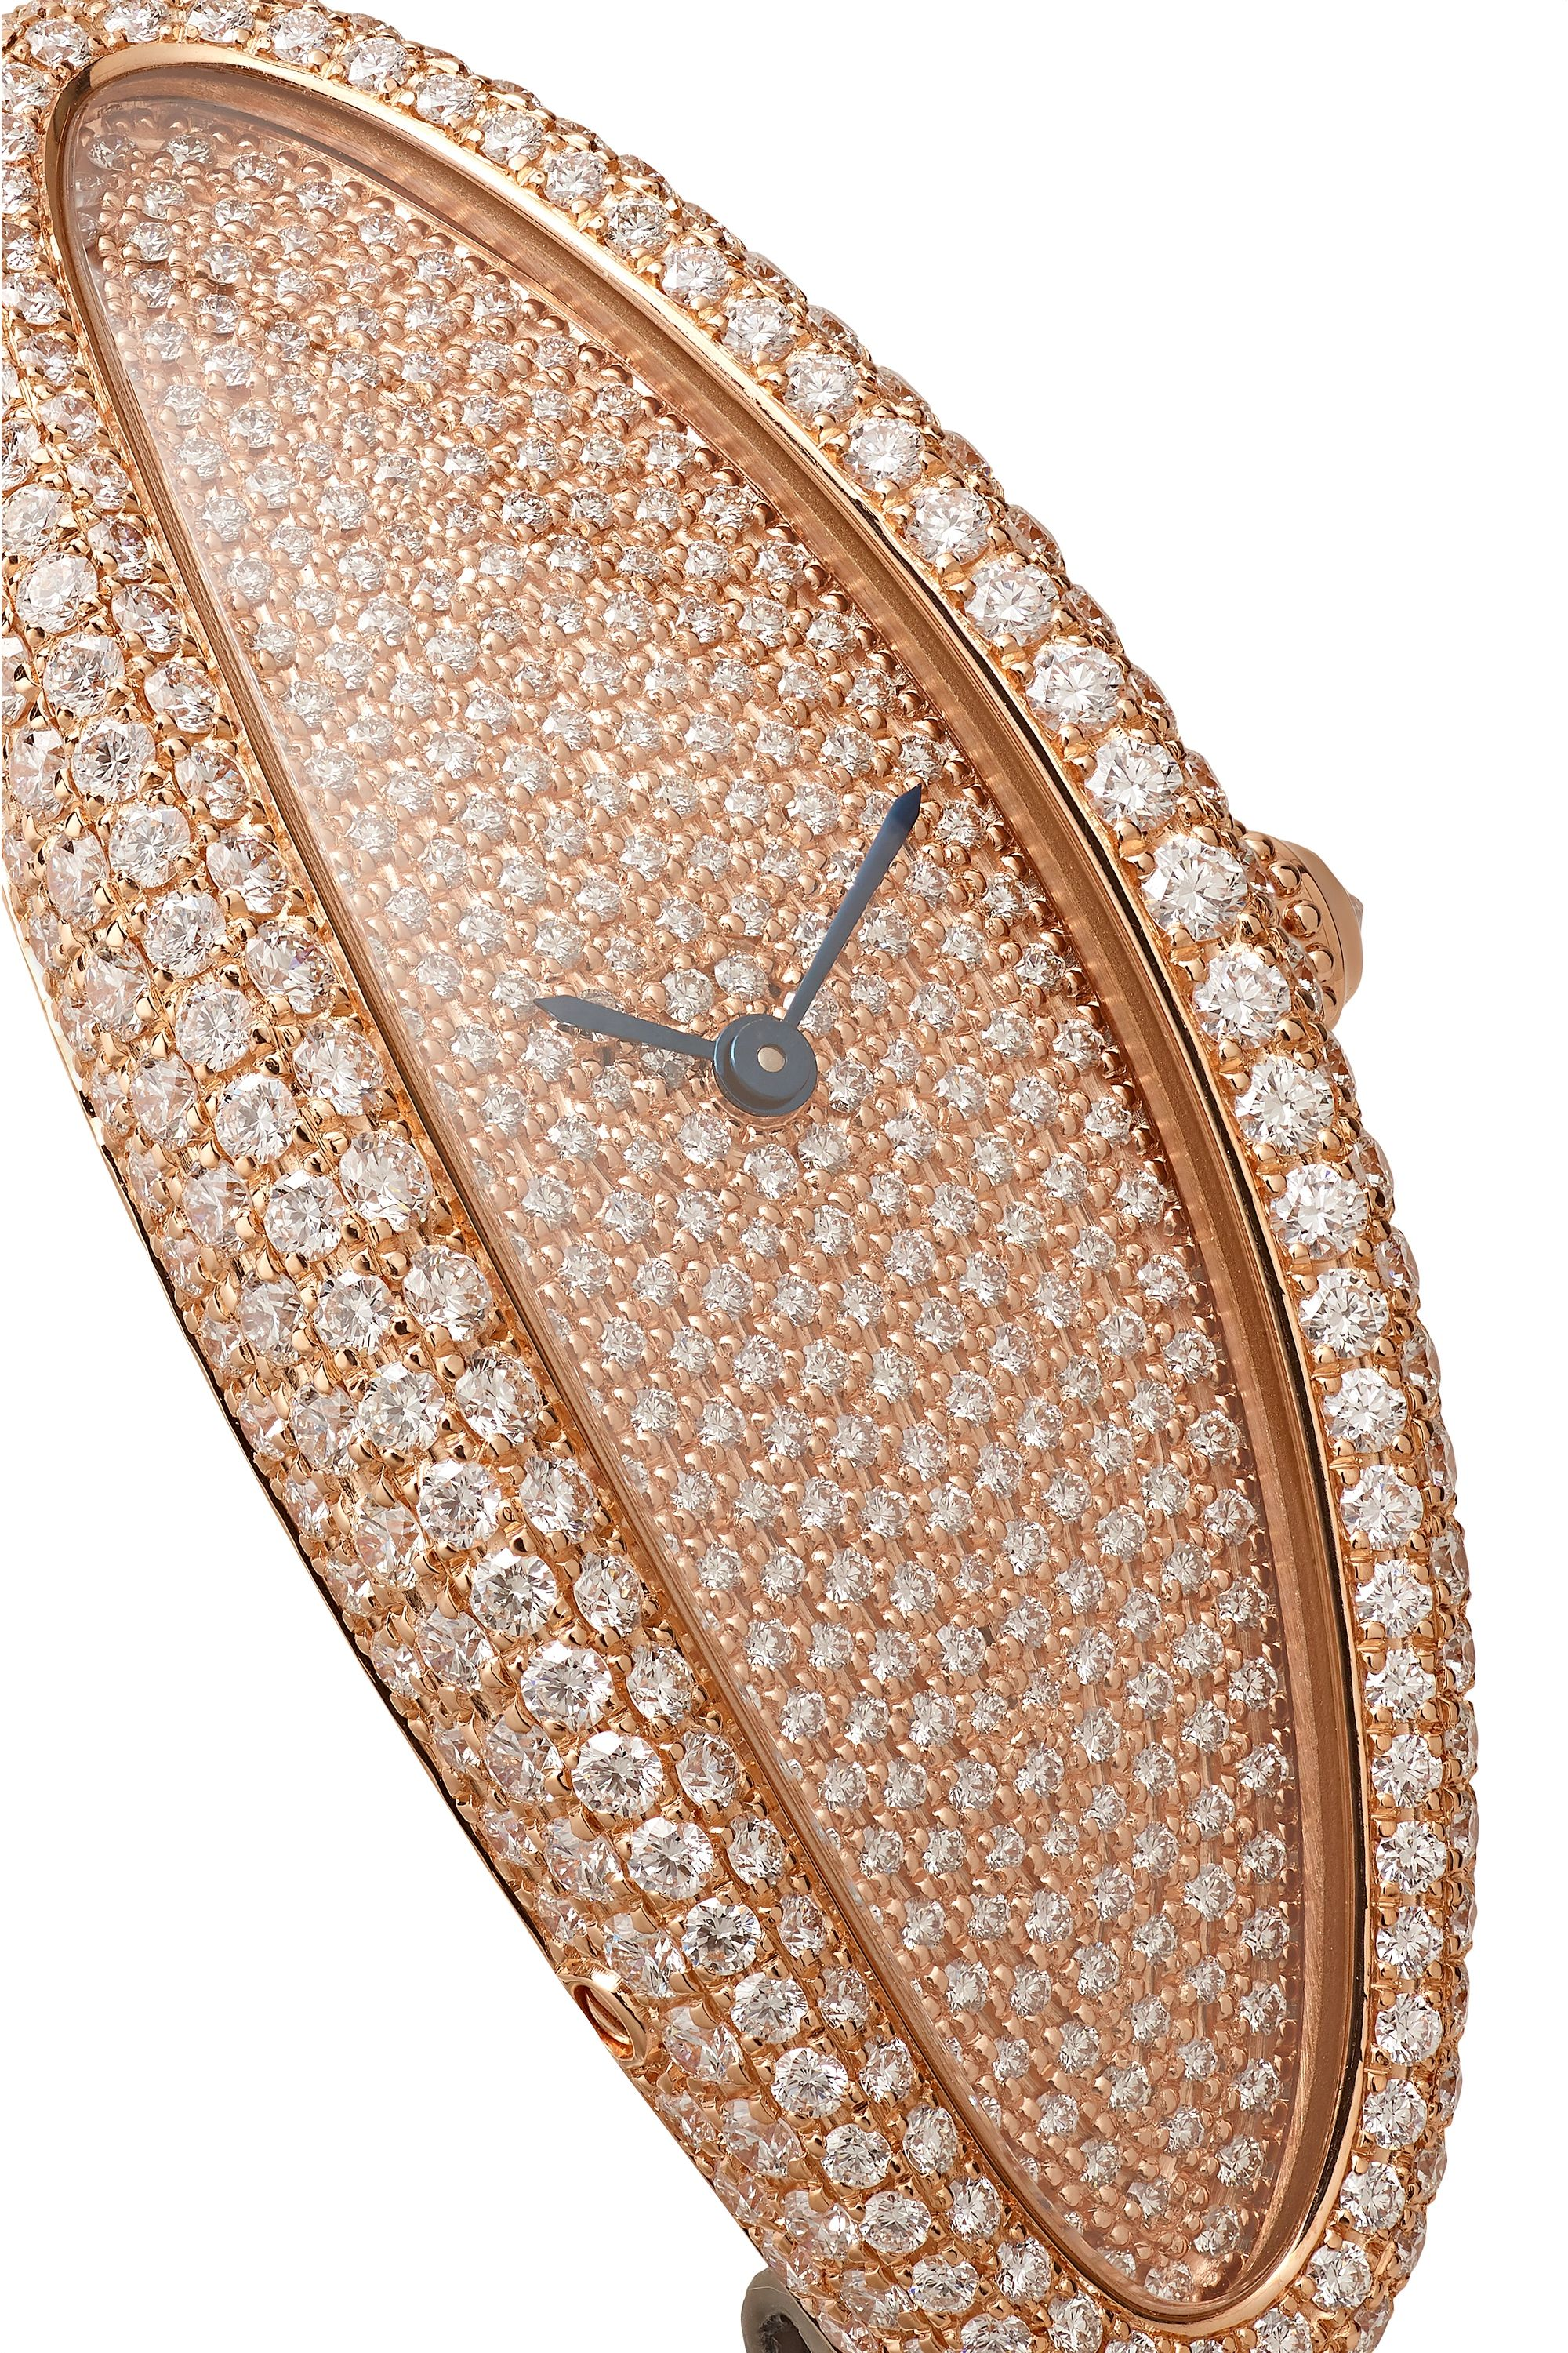 Cartier Baignoire Allongée 21mm medium 18-karat rose gold, alligator and diamond watch